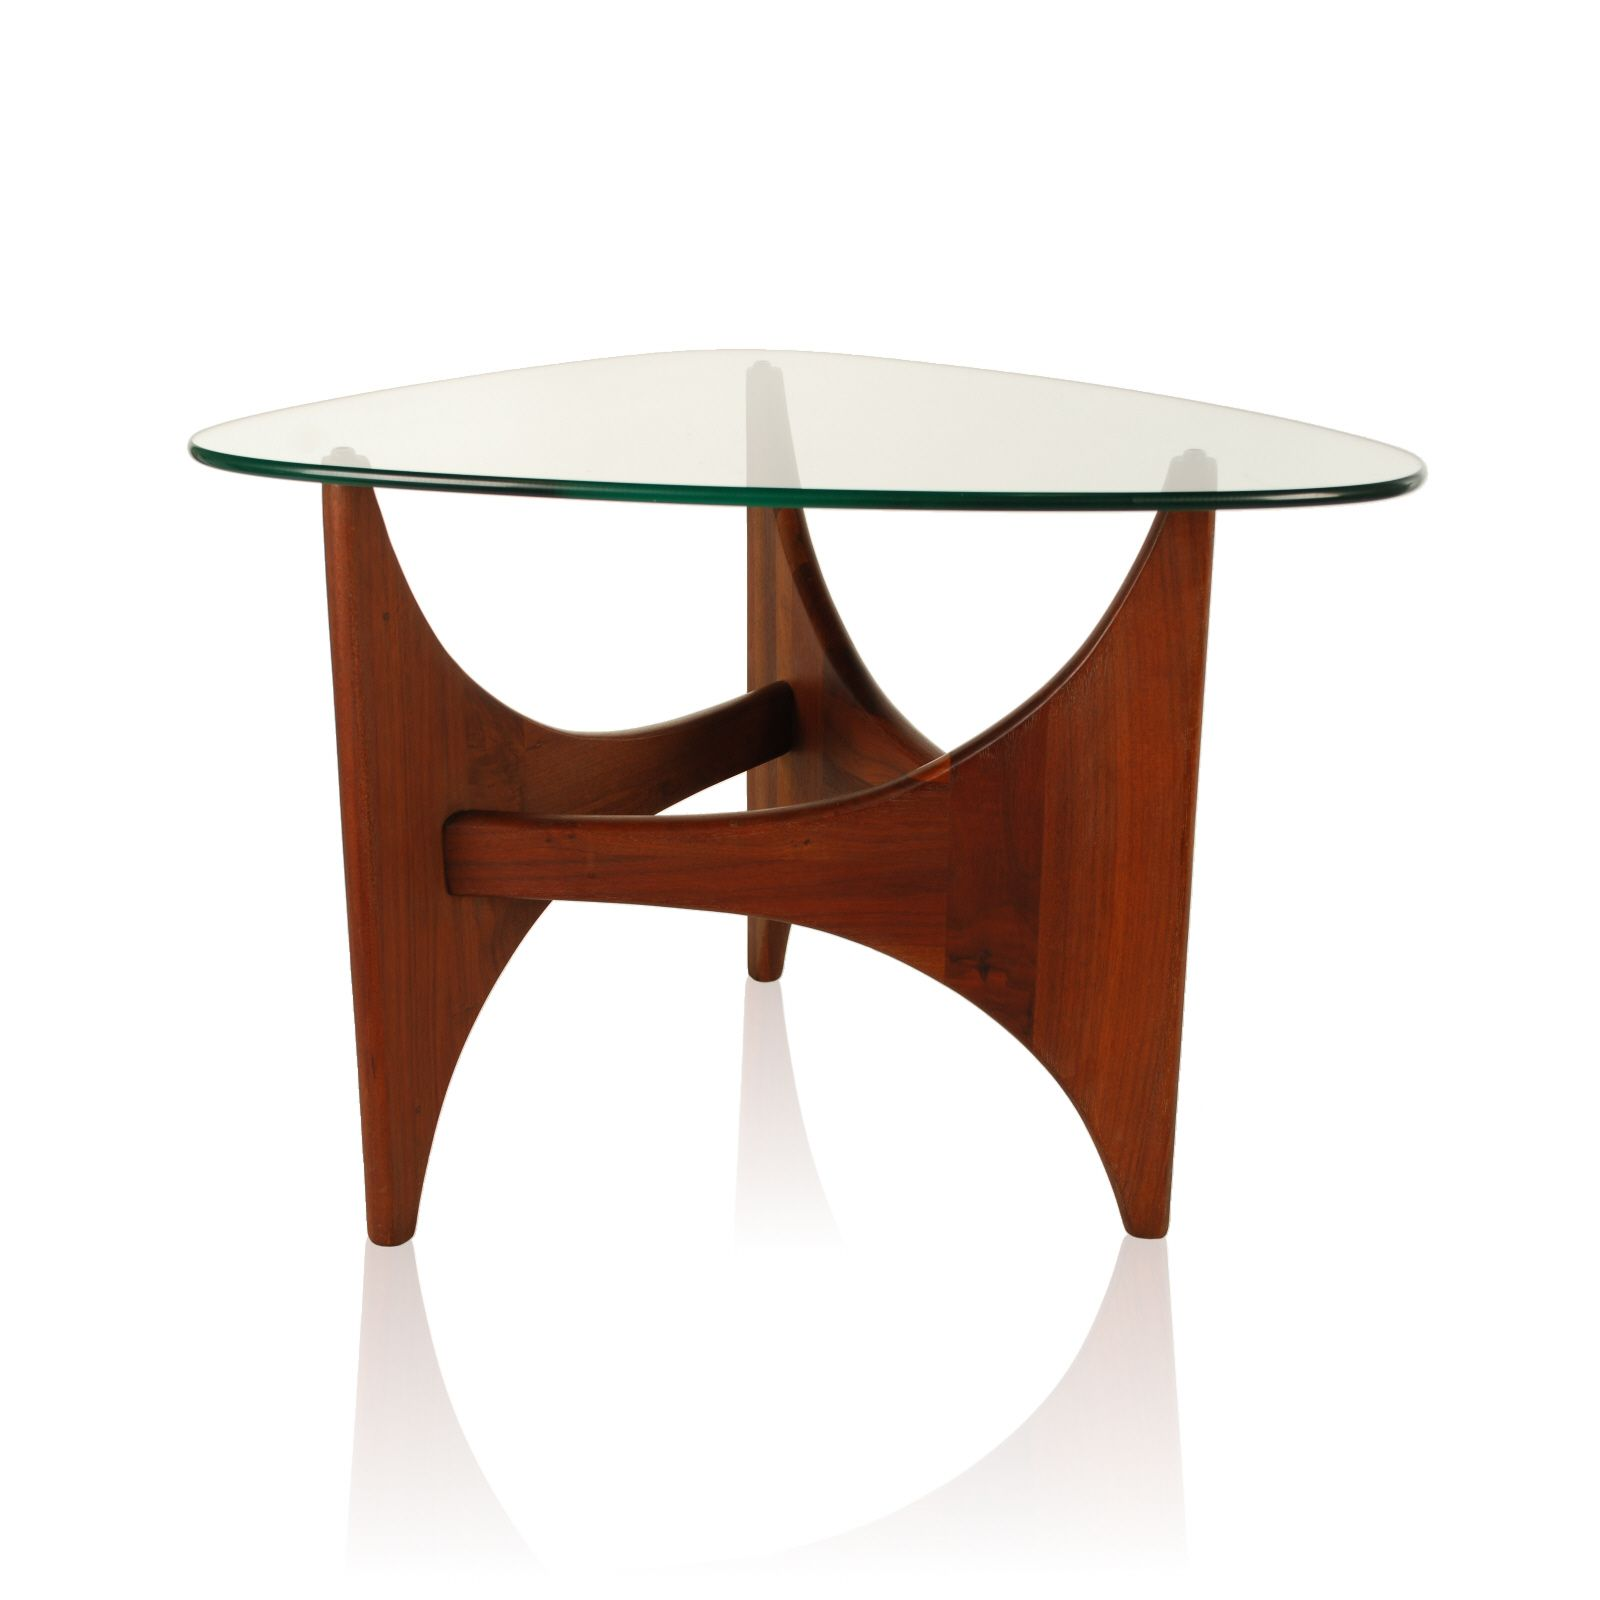 Contemporary Design Of The Triangle End Table With Glass Counterto Mid Century Modern Coffee Table Mid Century Glass Coffee Table Mid Century Modern Side Table #triangle #end #tables #for #living #room